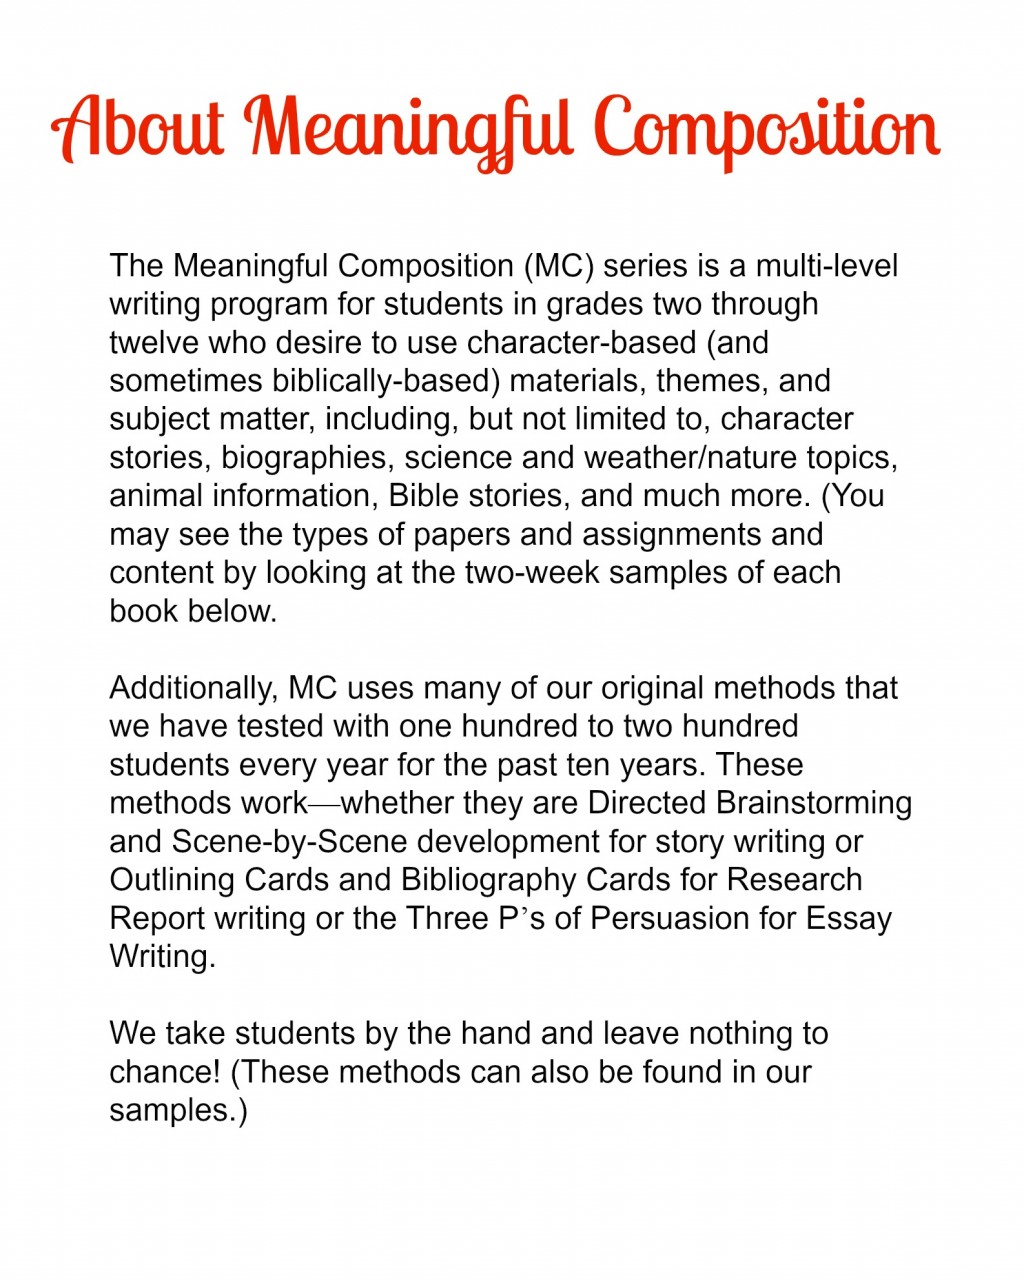 025 Expository Essays Of Introductions Creative Writing Course Paragraph Persuasive On Bullying About Meaningful Compos Cyber How To Prevent Five Stupendous Examples Essay Prompts 5th Grade Pdf For High School Large